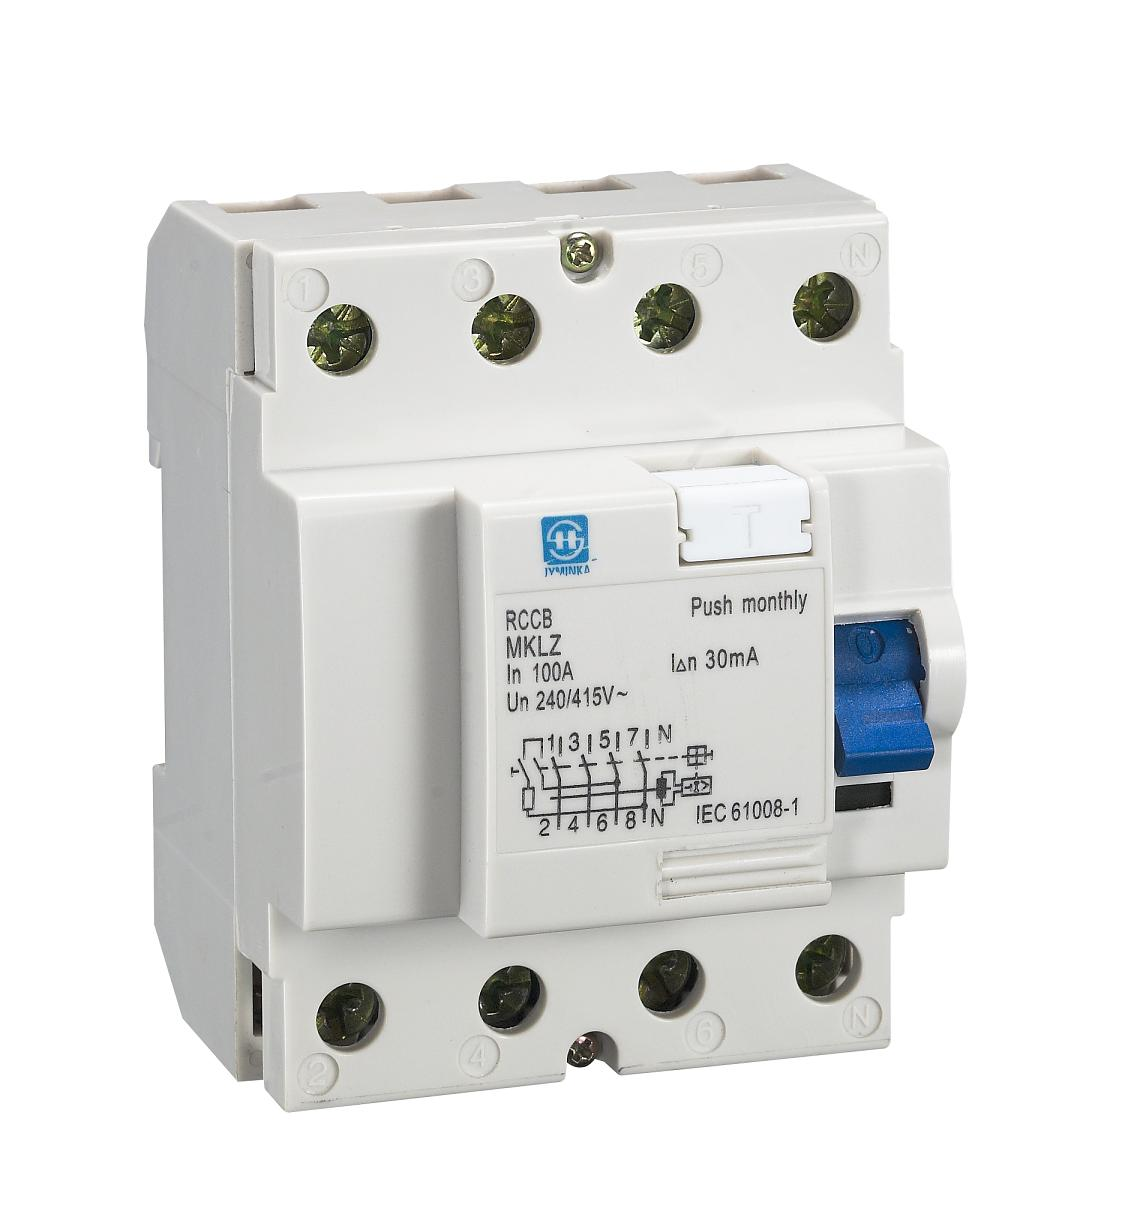 Residual Current Device : Magenitic residual current device buy china circuit